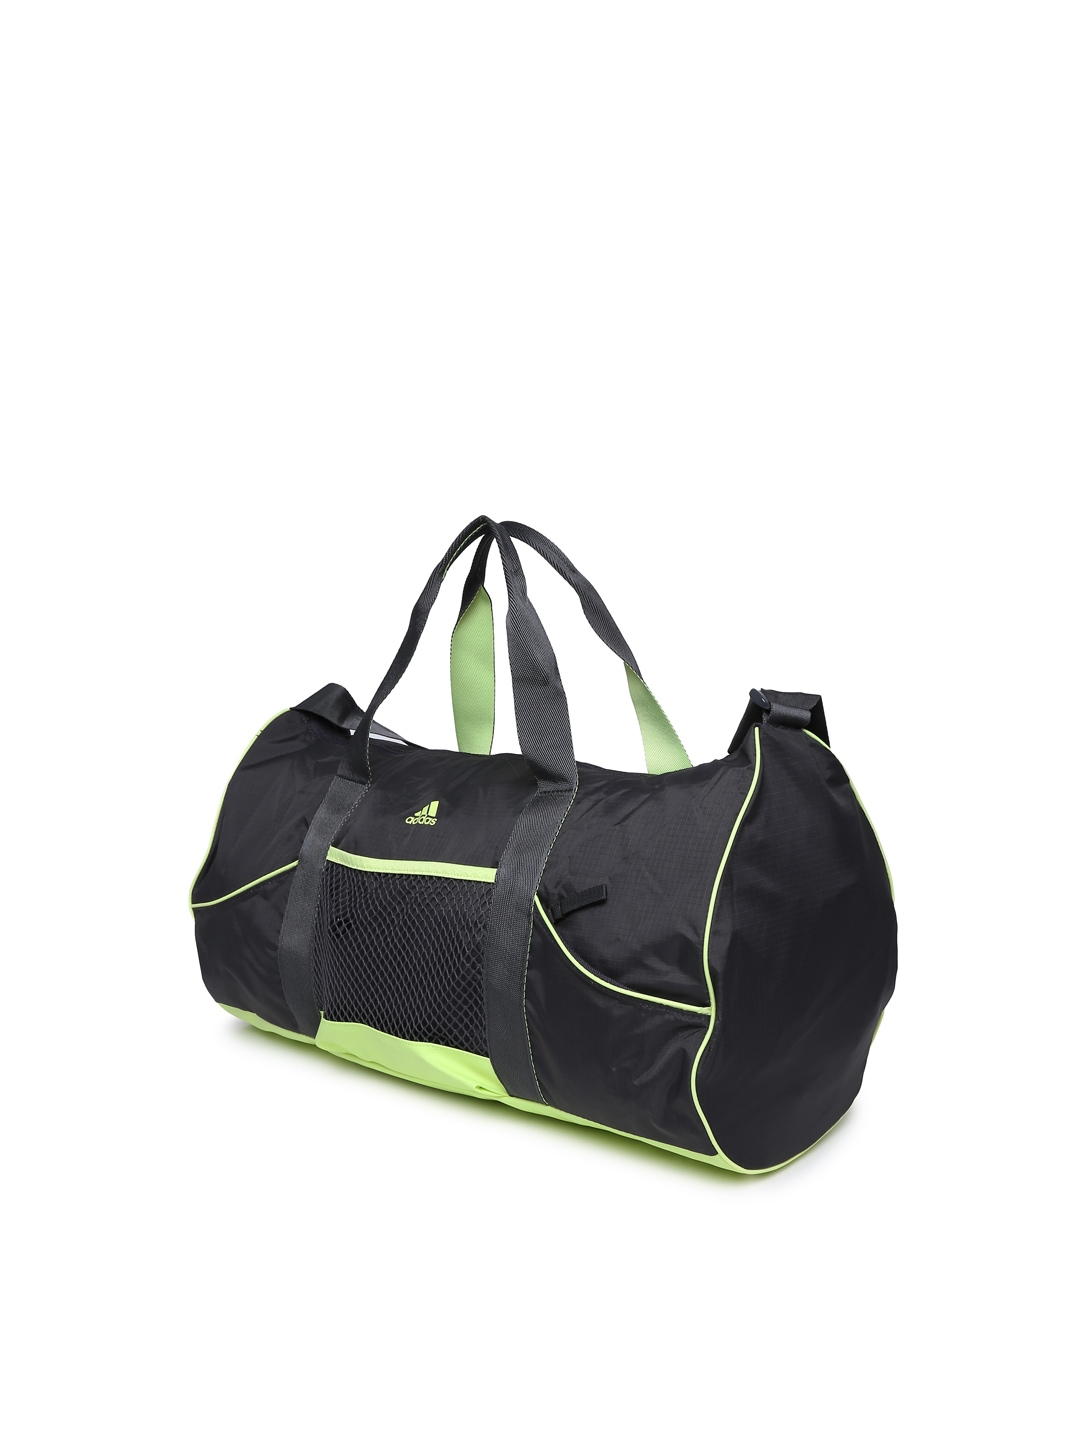 Wonderful This Squad III Duffel Bag From Adidas Gives You Toptobottom Functionality In A Tough, Travelready Design This Duffle Features A Mesh Water Bottle Pocket And A Lasercut FreshPAK Ventilated Shoe Compartment That Resists Bacterial Odors